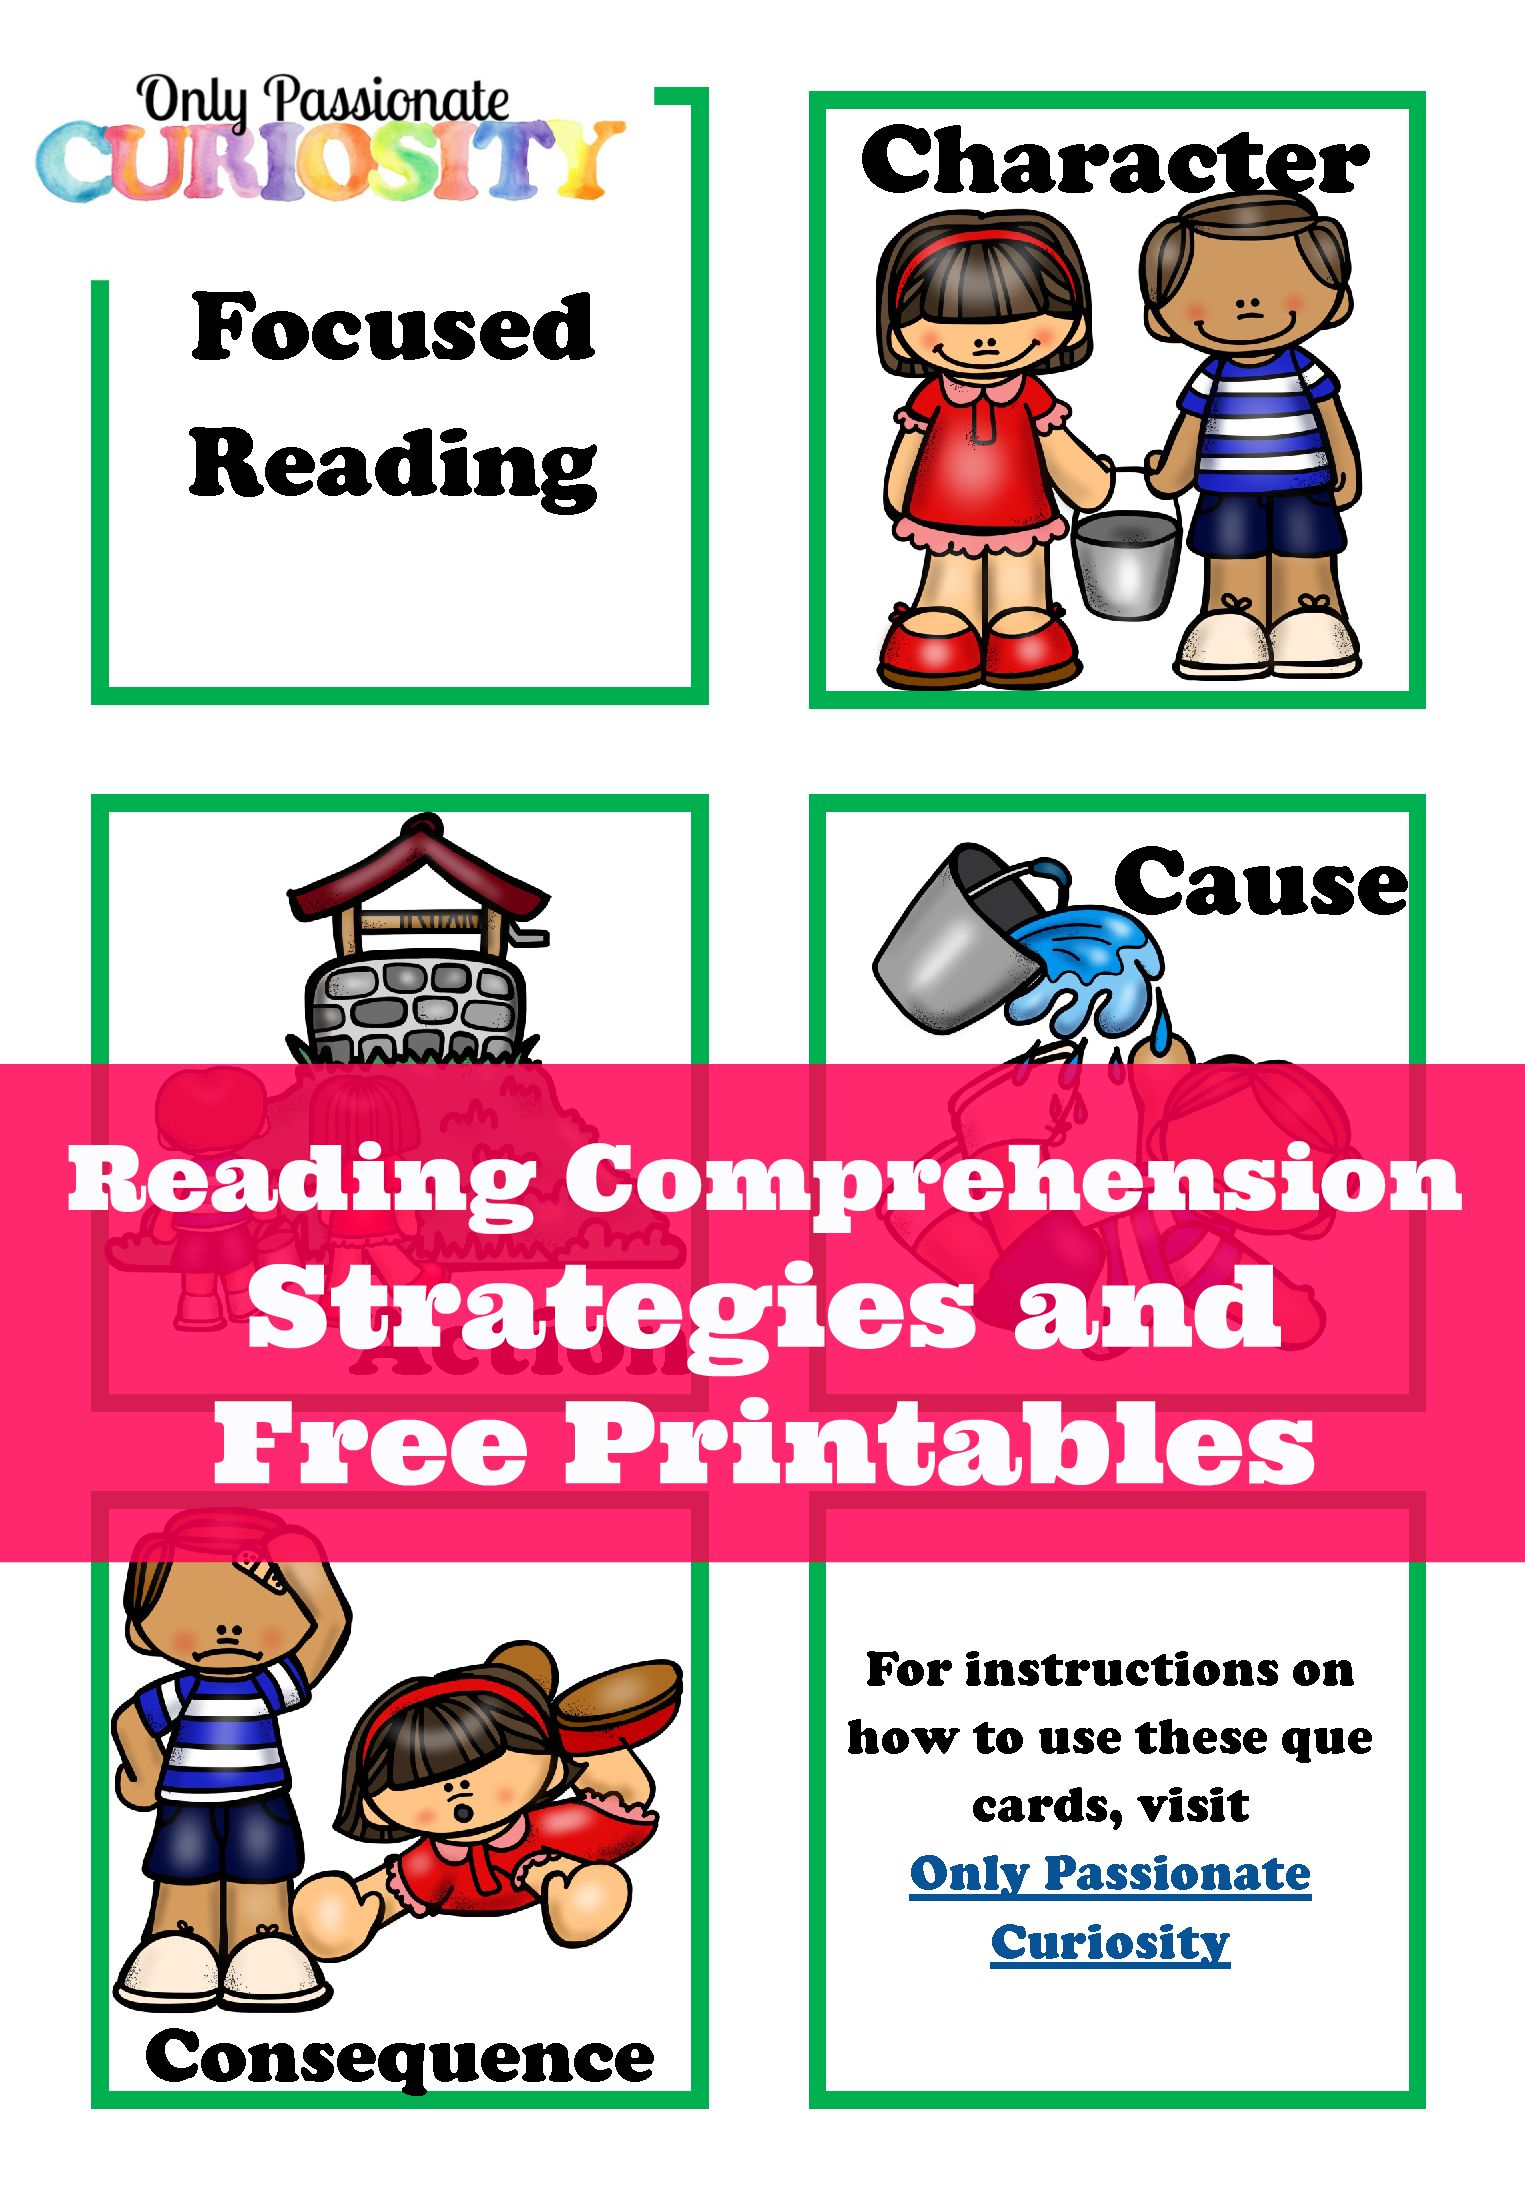 Reading Comprehension Cue Cards - Only Passionate Curiosity